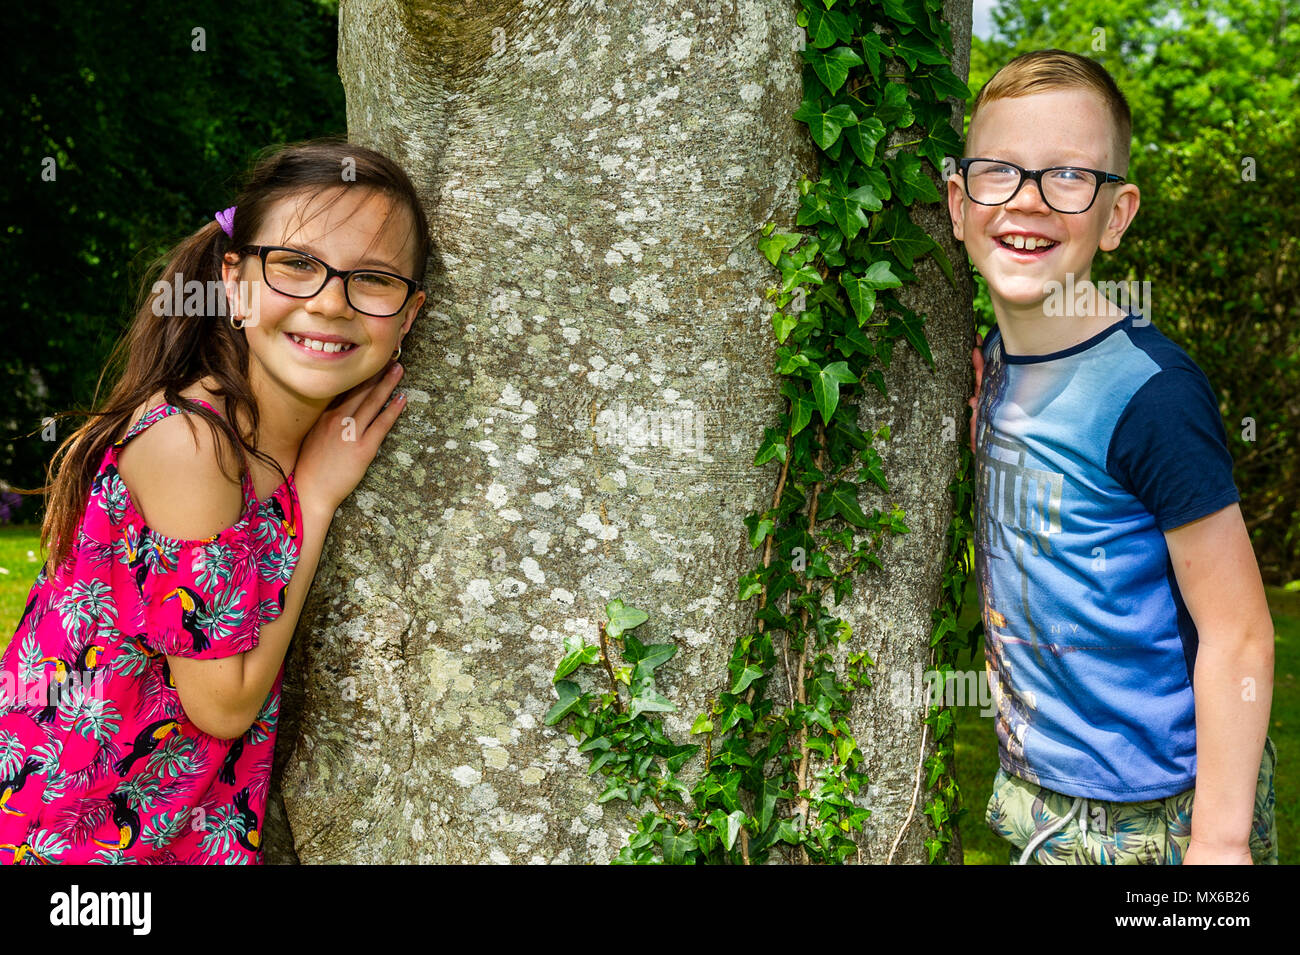 Bantry, Ireland. 3rd June, 2018. The West Lodge Hotel in Bantry held a Red Head Festival in Bantry over the weekend. Two children are pictured at the family fun day on Sunday. Credit: Andy Gibson/Alamy Live News. - Stock Image